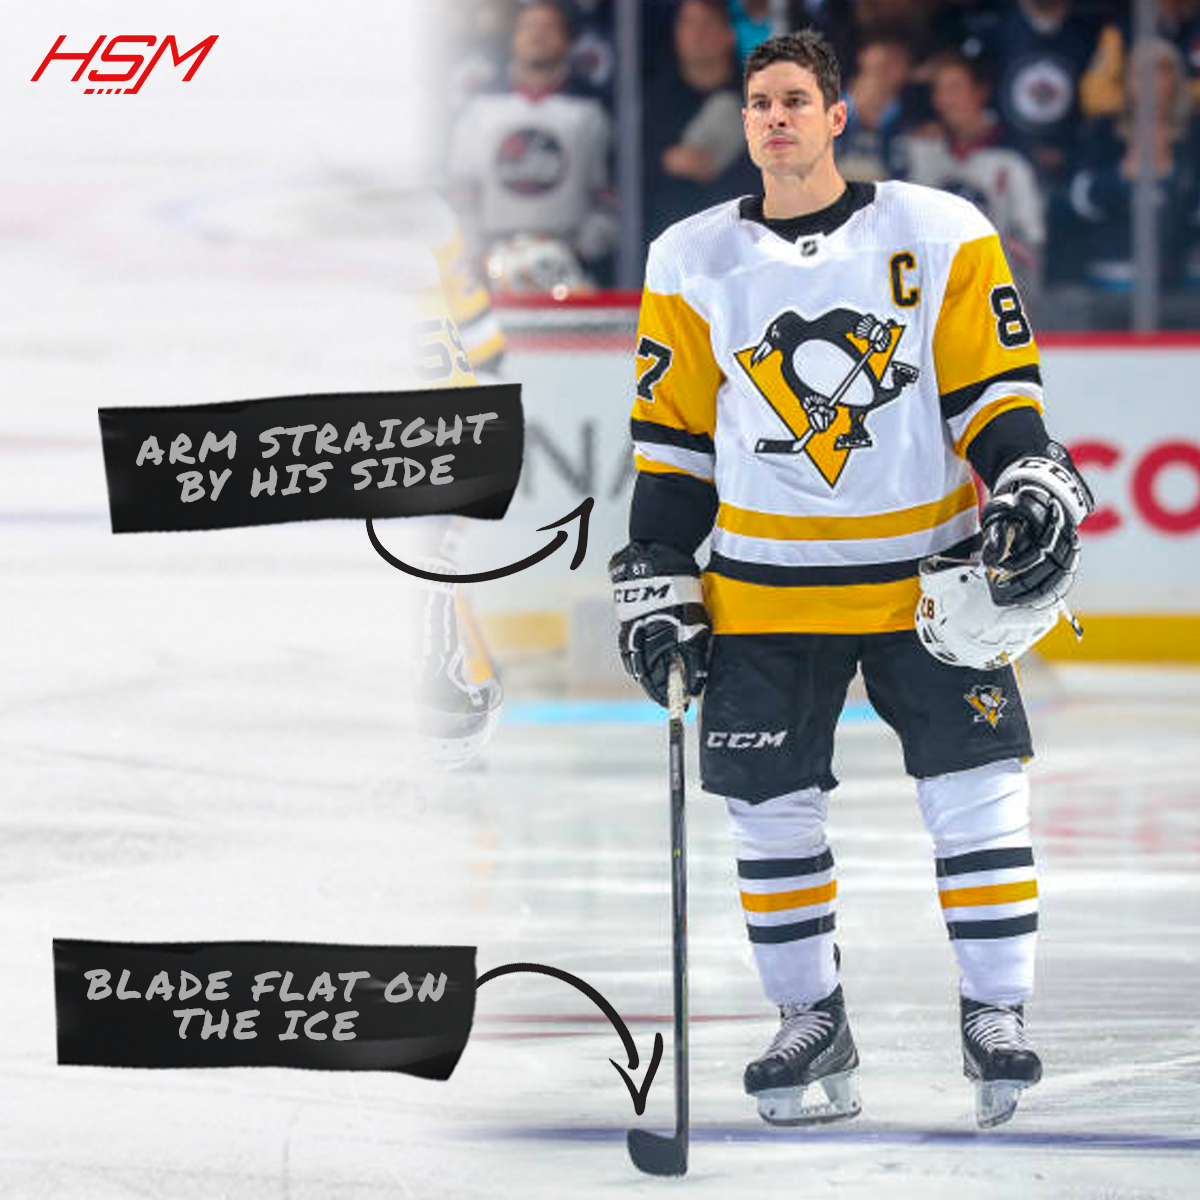 how long should my hockey stick be crosby